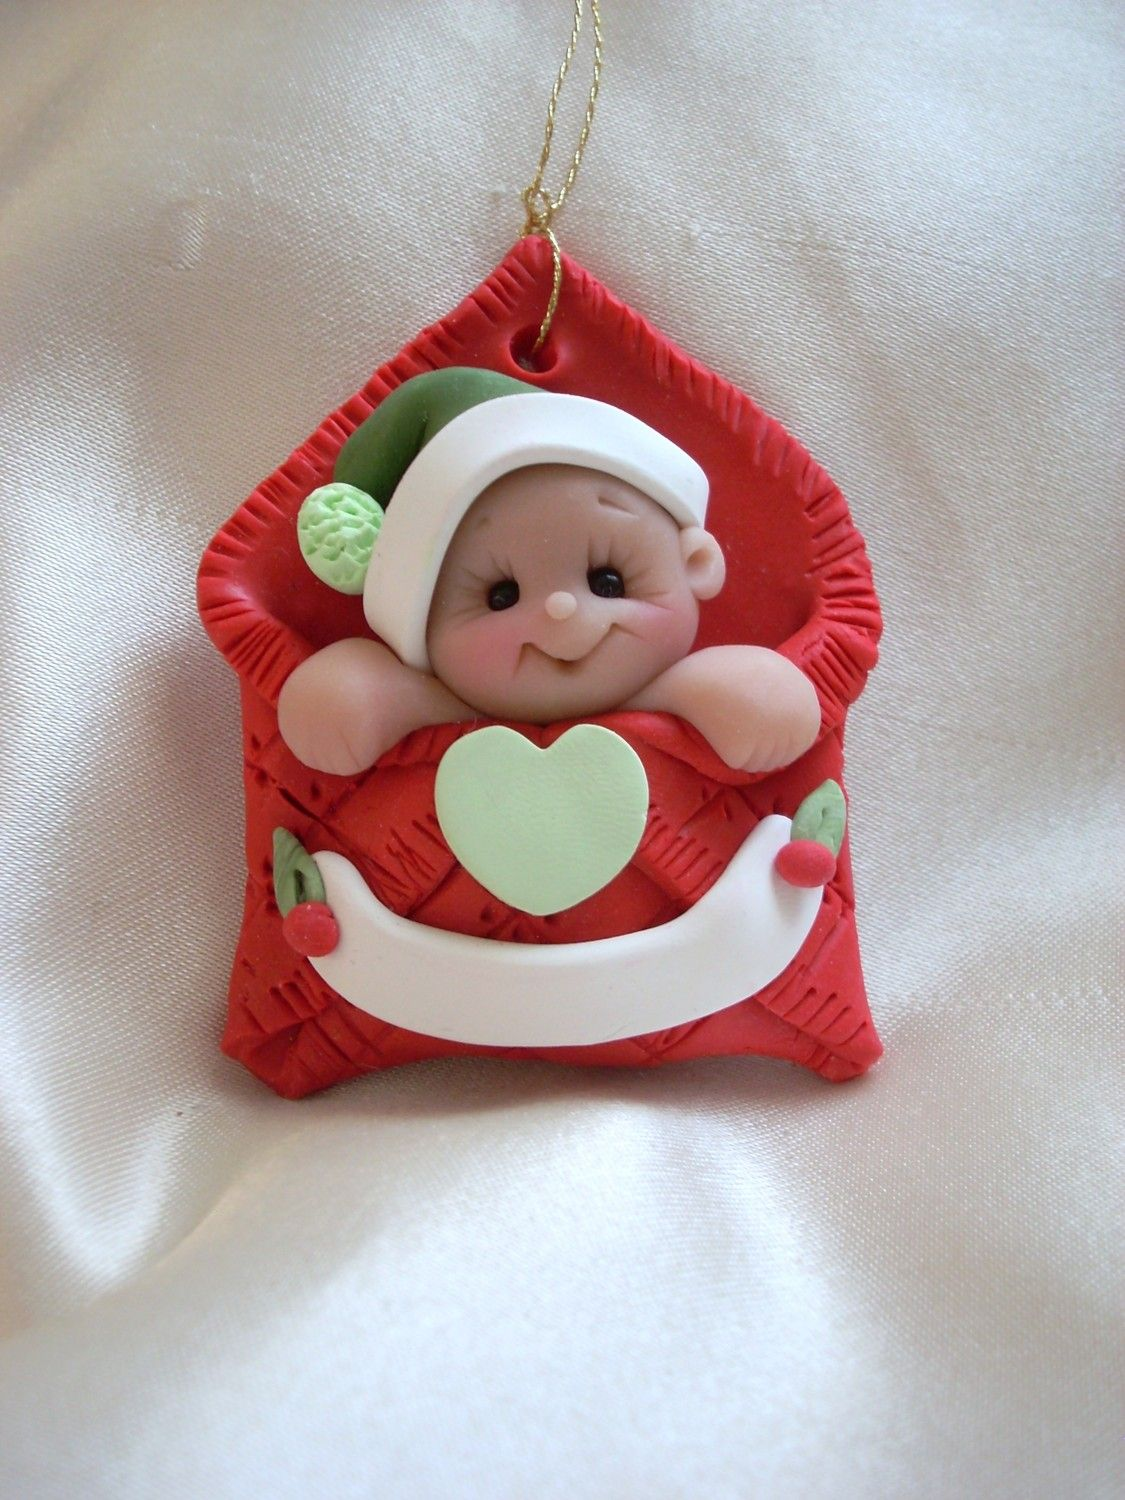 Personalized baby christmas ornaments - Baby S First Christmas Ornament Personalized Baby Gift Polymer Clay Baby Shower Gift